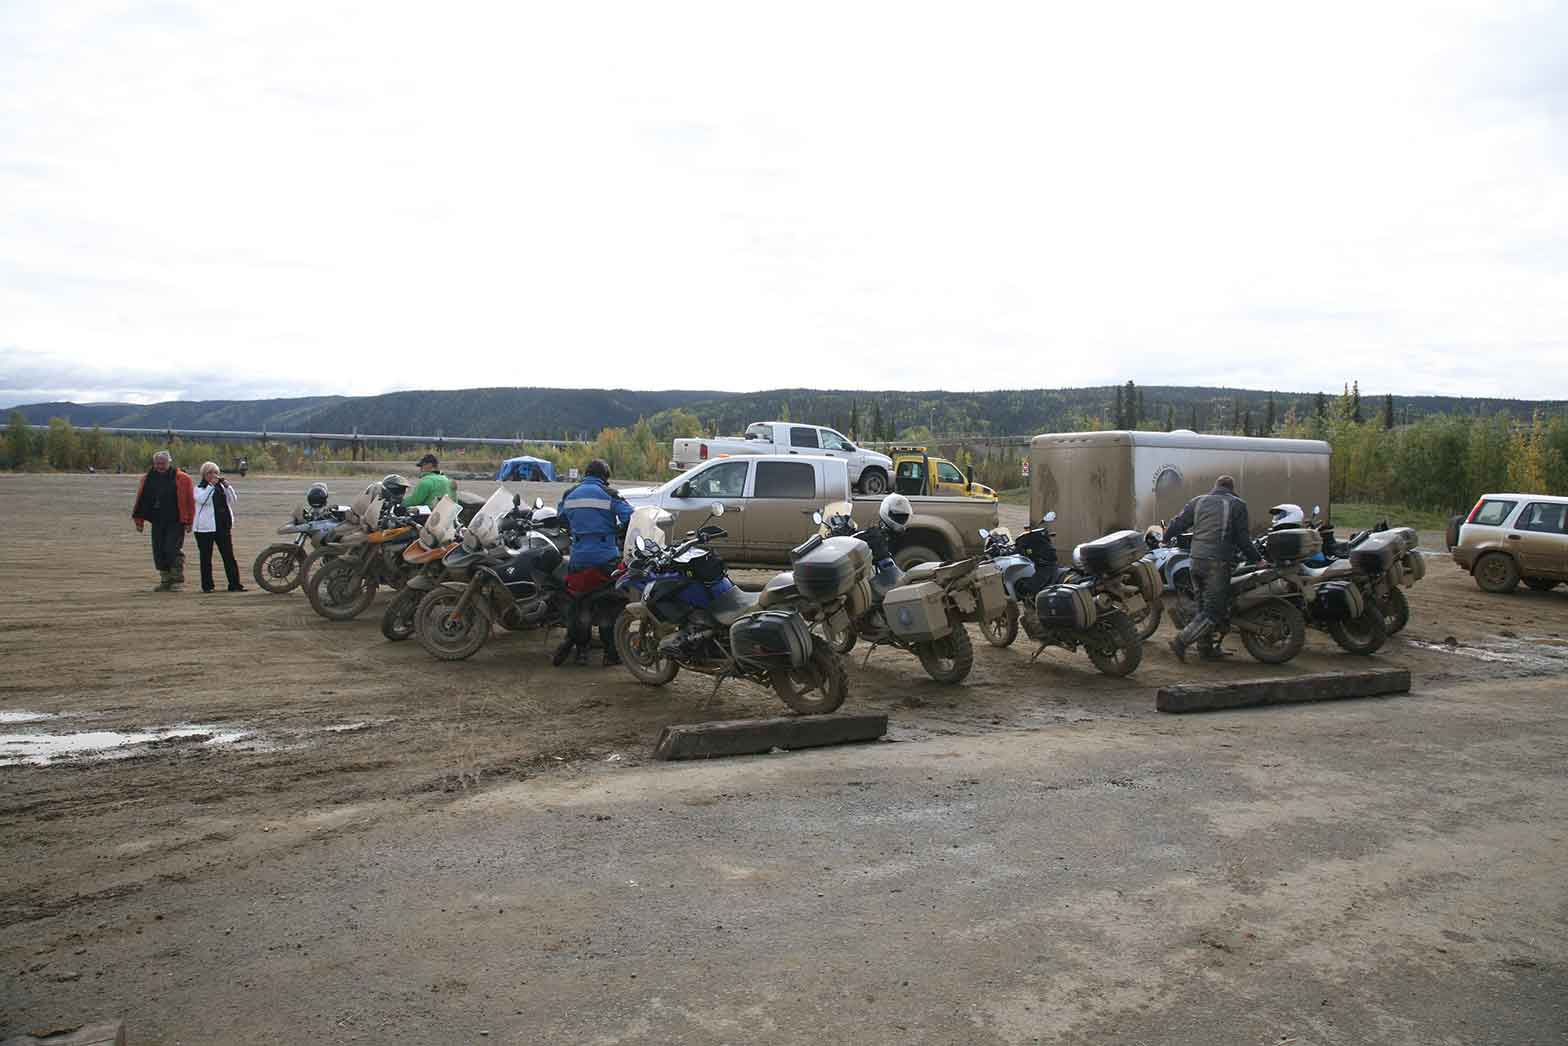 Stopping at the Yukon River